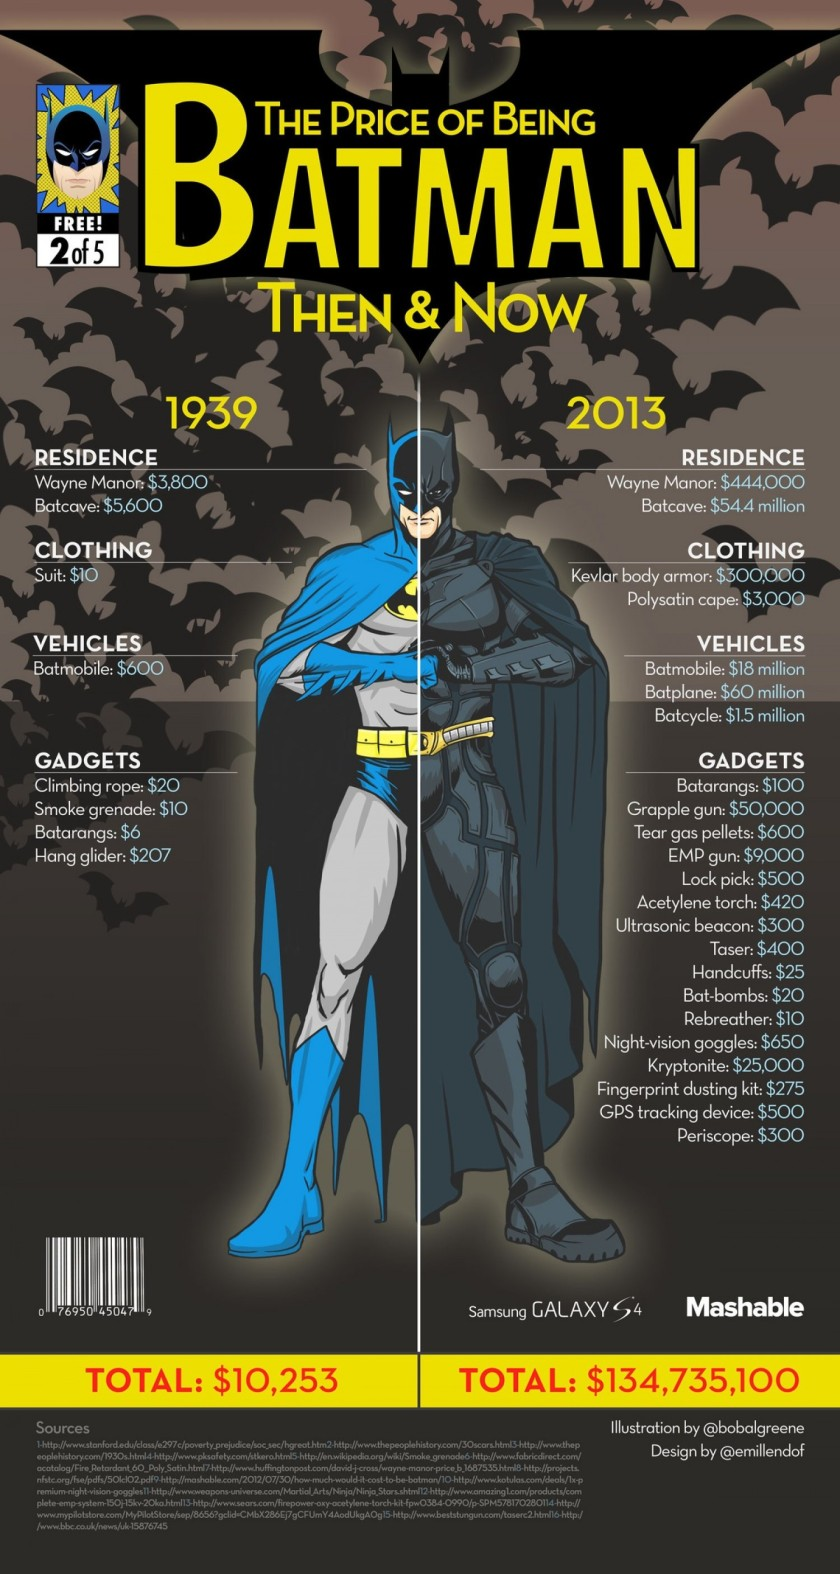 How Much Does It Cost to be Batman?